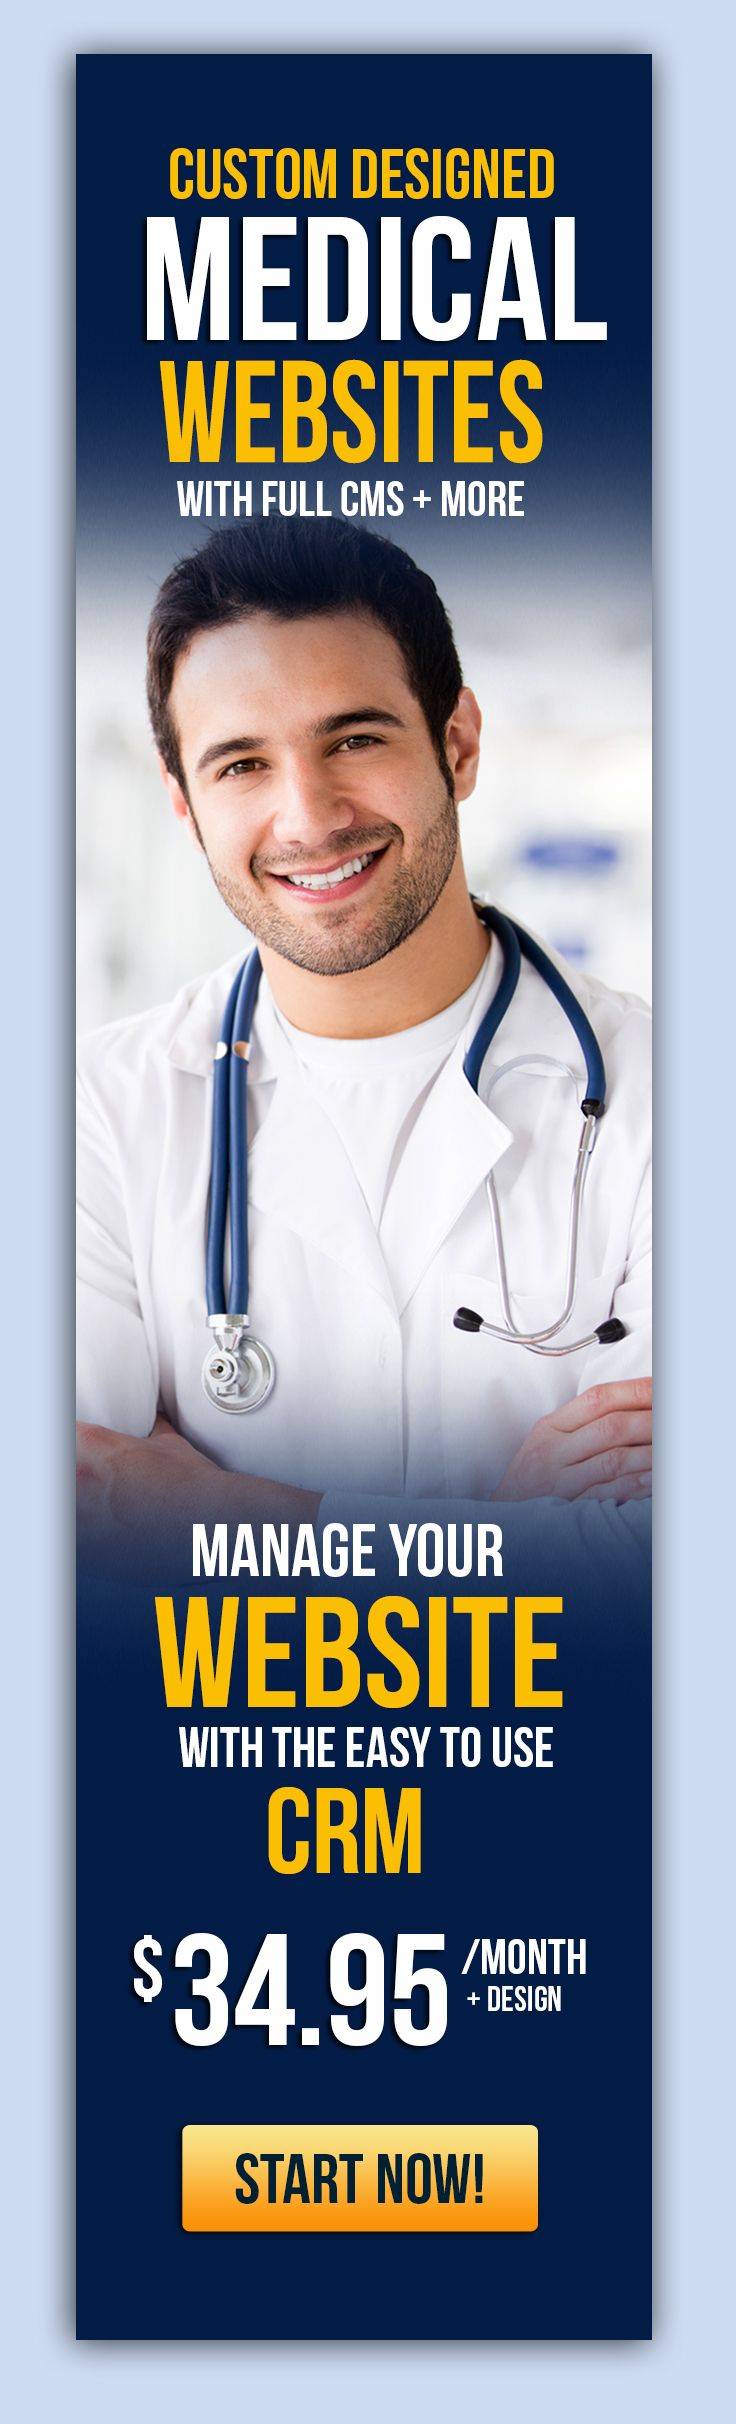 Professional custom medical websites, Plastic Surgery,Tampa Primary Care, Family doctor, Primary care doctor, Urgent Care, Dentist websites, Pregnancy Care websites, Teen Pregnancy, Teen Counseling websites, Physical Therapy websites,  small business websites and  CMS.